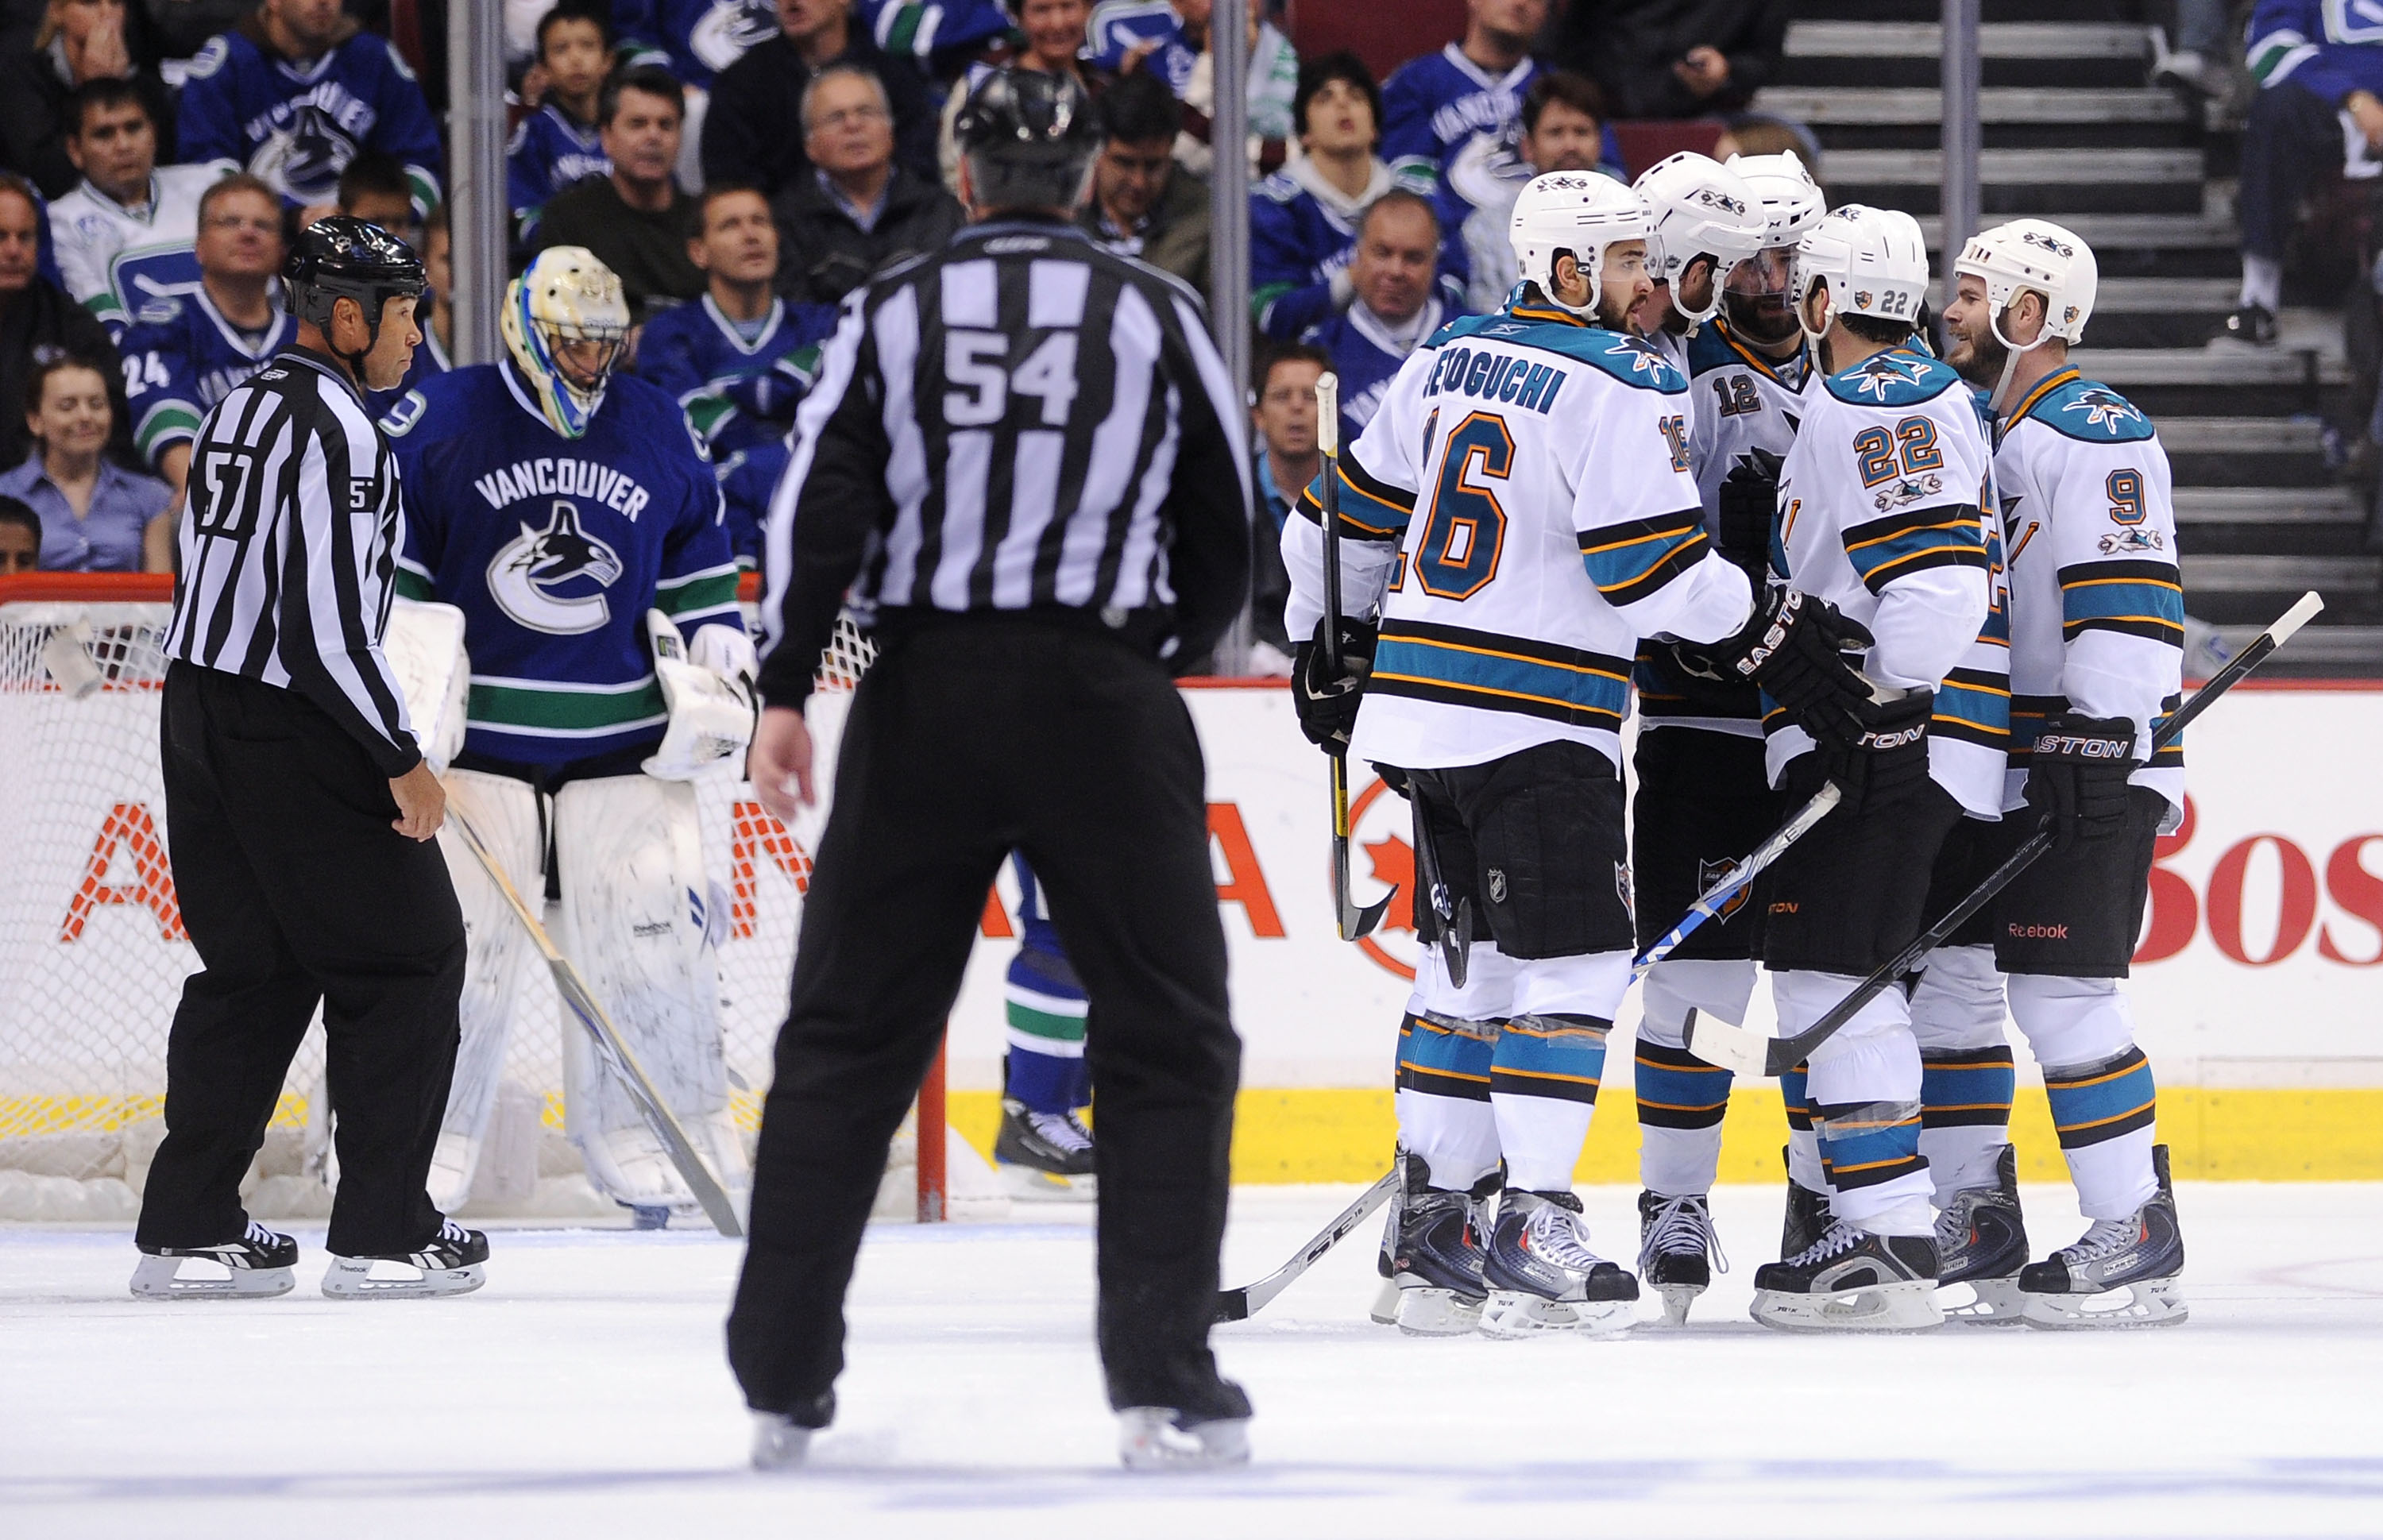 VANCOUVER, BC - MAY 15:  Patrick Marleau #12 of the San Jose Sharks celebrates his second period goal with teammates Devin Setoguchi #16, Joe Thornton #19, Dan Boyle #22 and Ian White #9 as goaltender Roberto Luongo #1 of the Vancouver Canucks looks on in